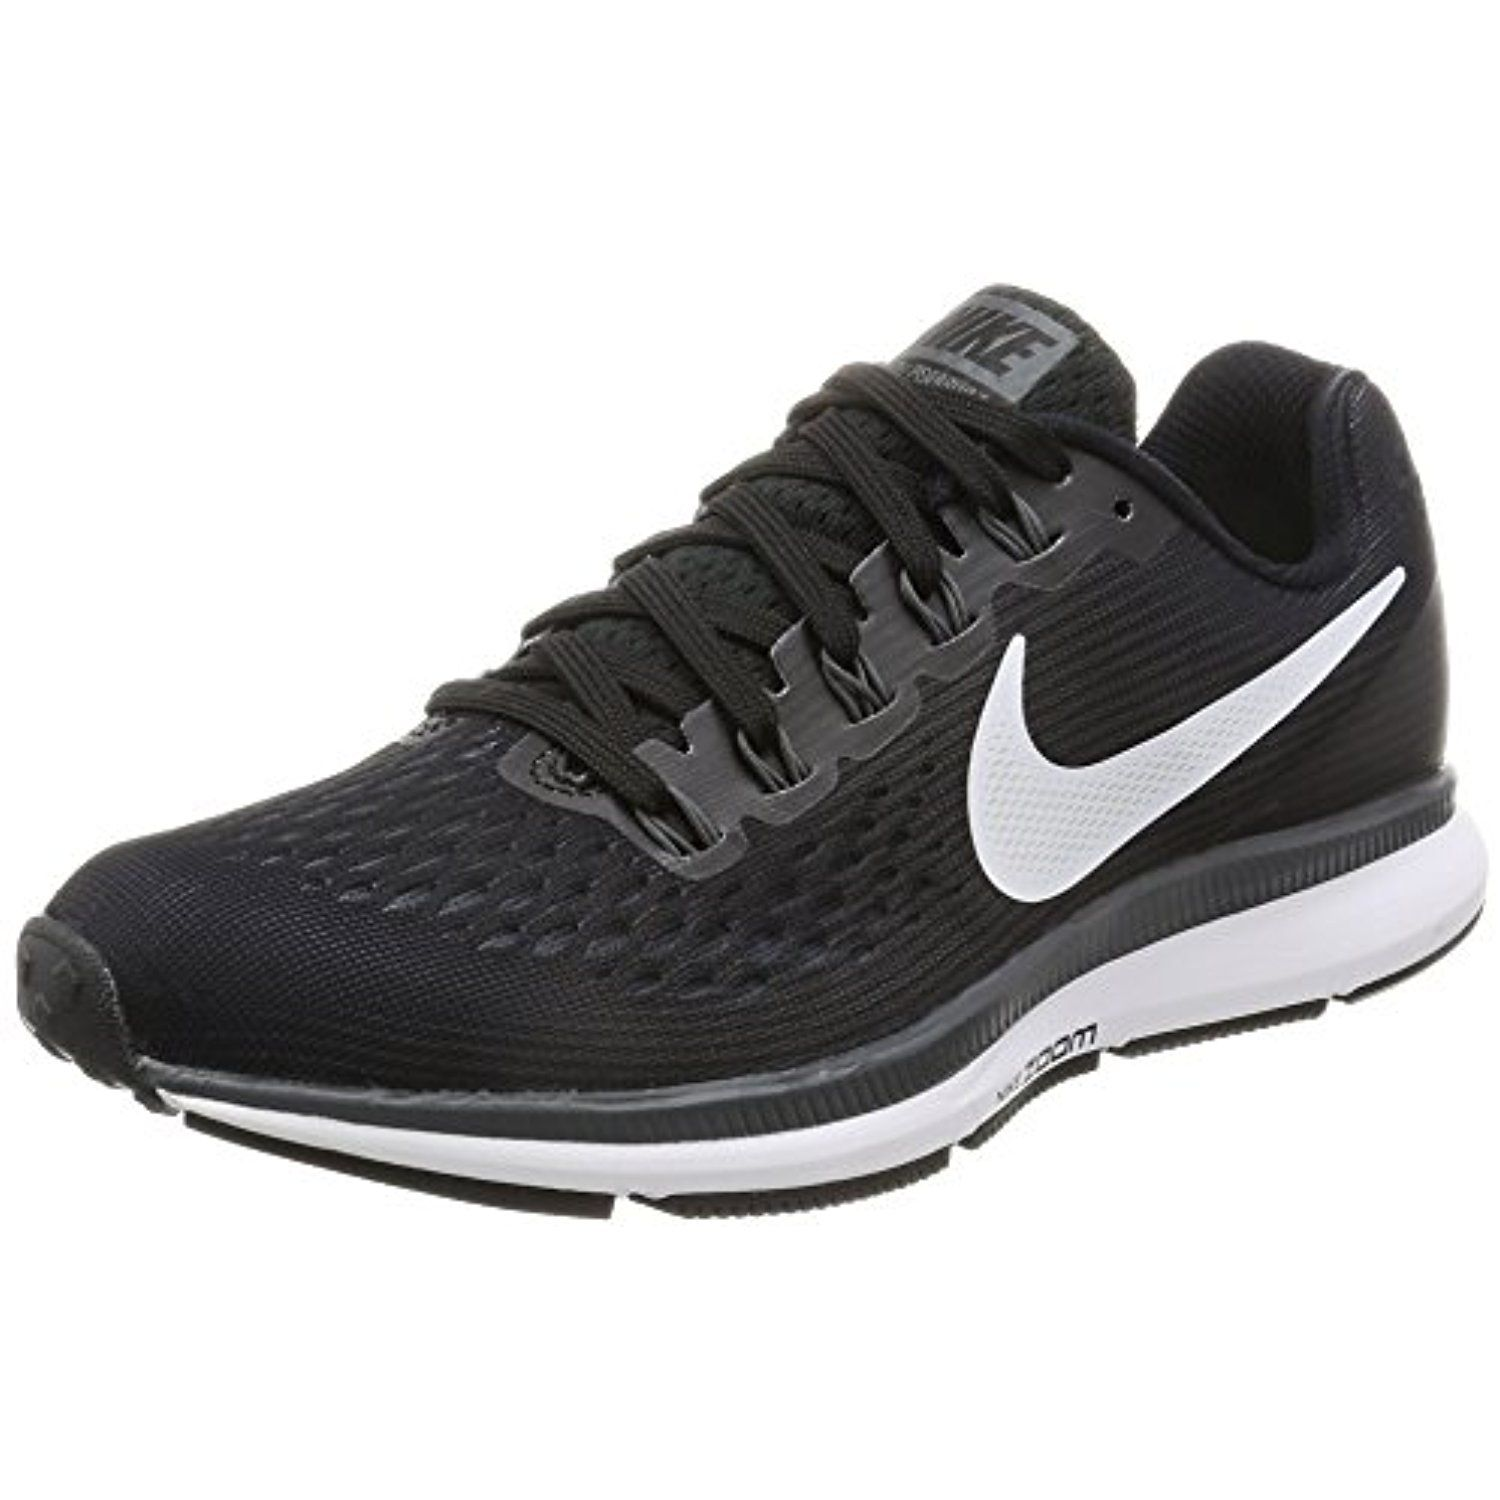 newest 38fc4 dc546 Nike Air Max Thea Women S Shoes White Black 599409-103   Products    Pinterest